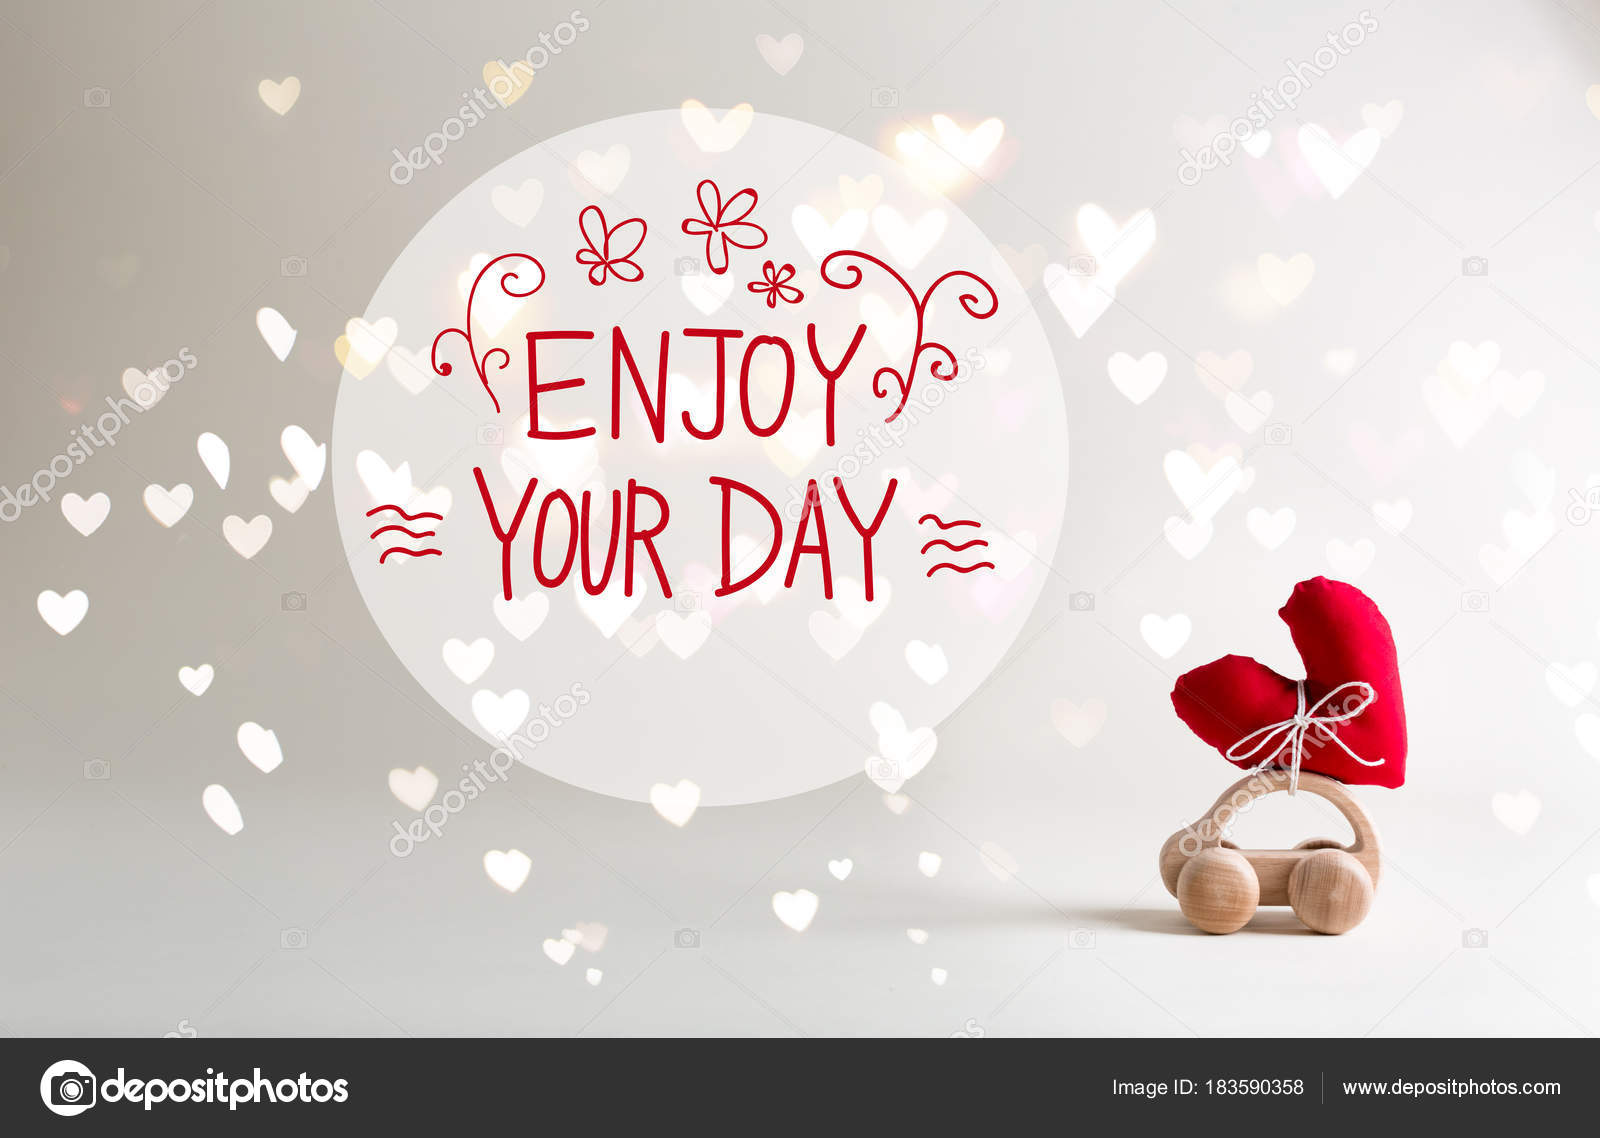 Superb Enjoy Your Day Message With Toy Car Carrying A Heart U2014 Stock Photo